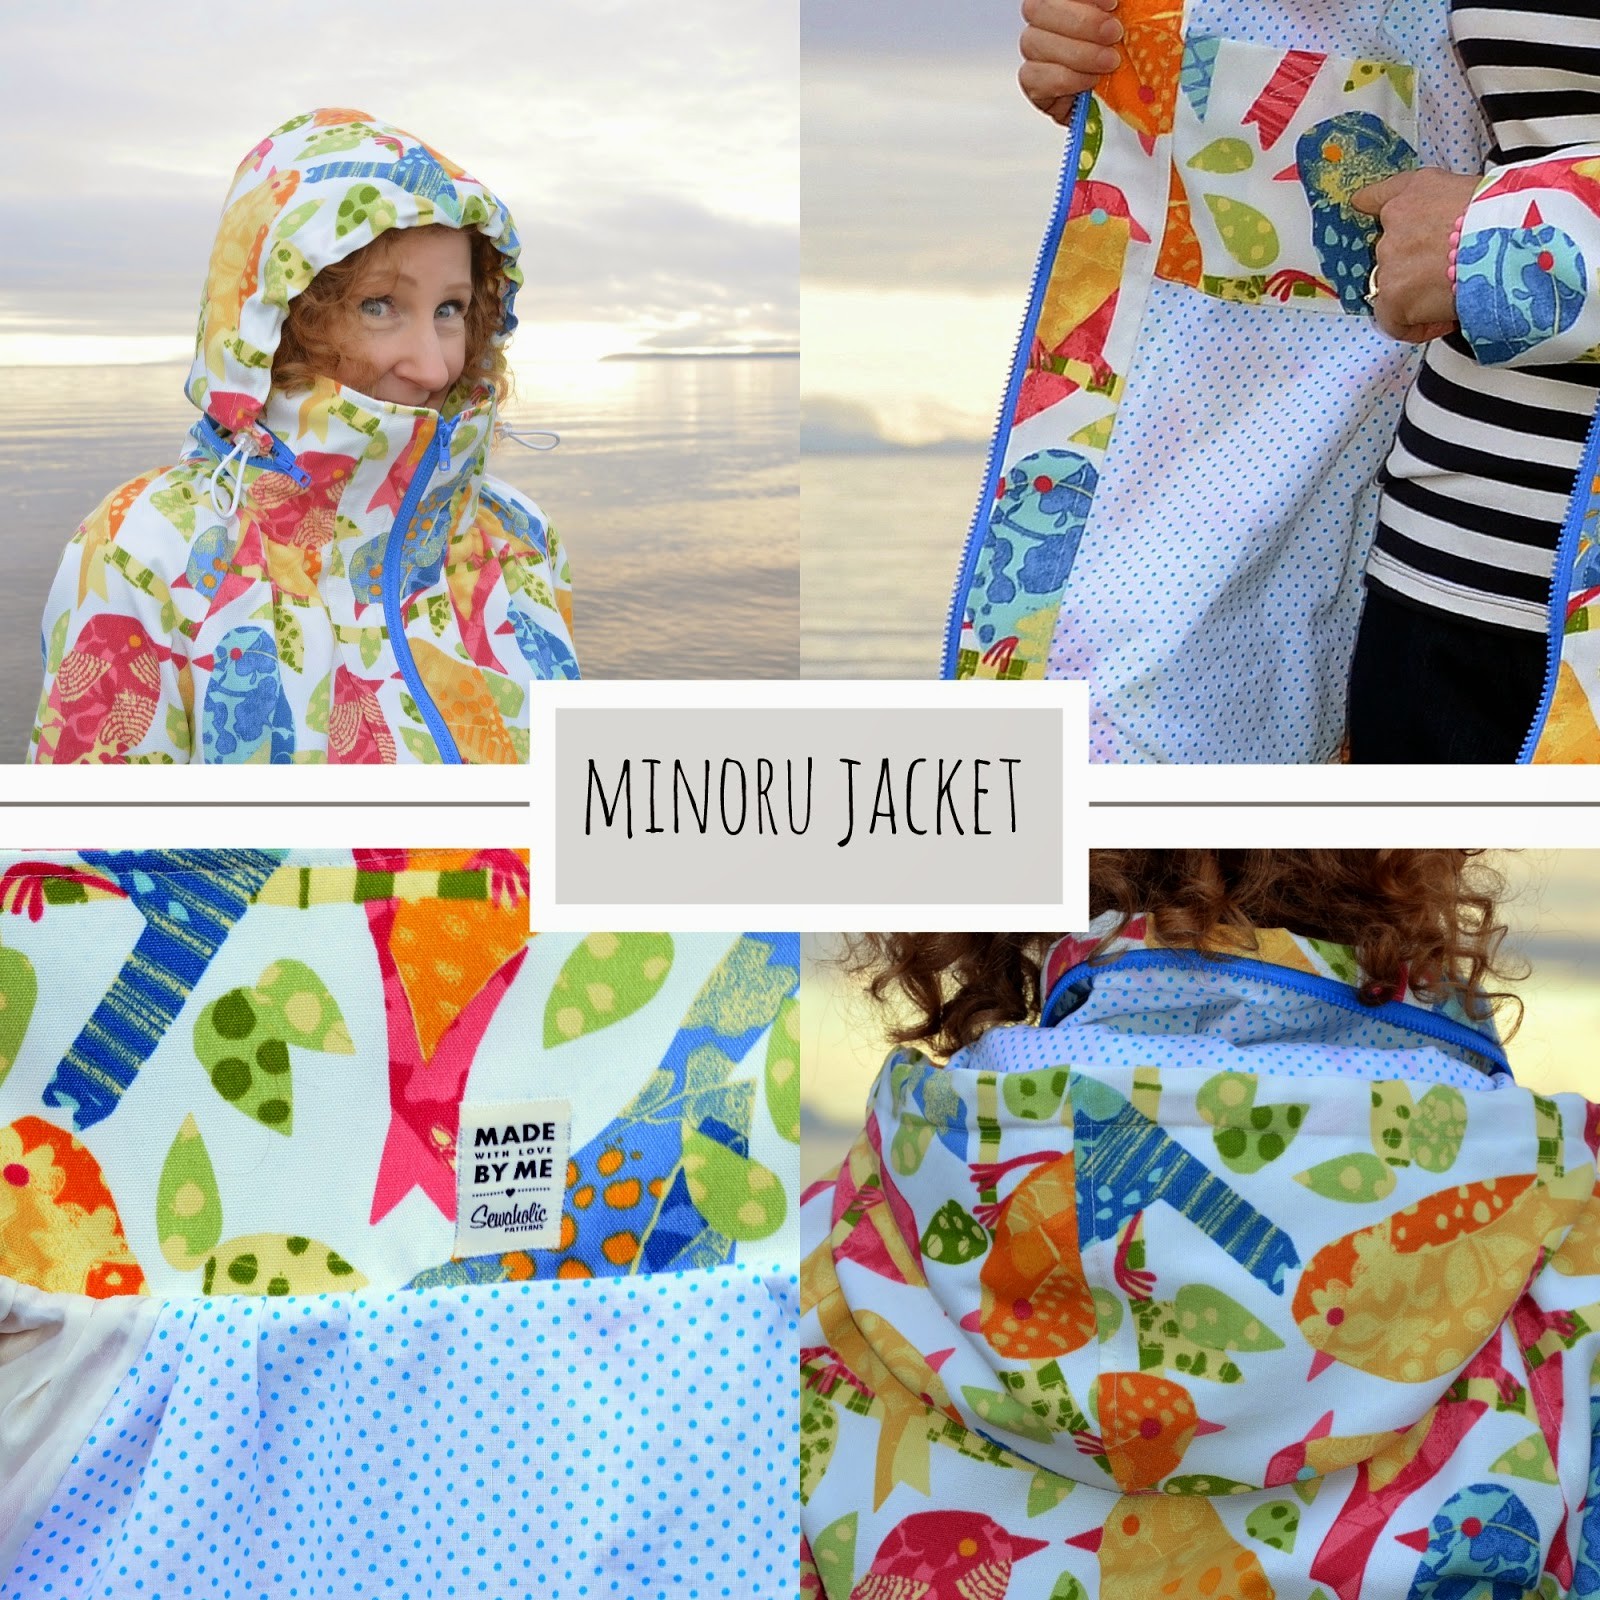 A Colourful Canvas, Sewaholic MInoru Jacket, DYT Type One